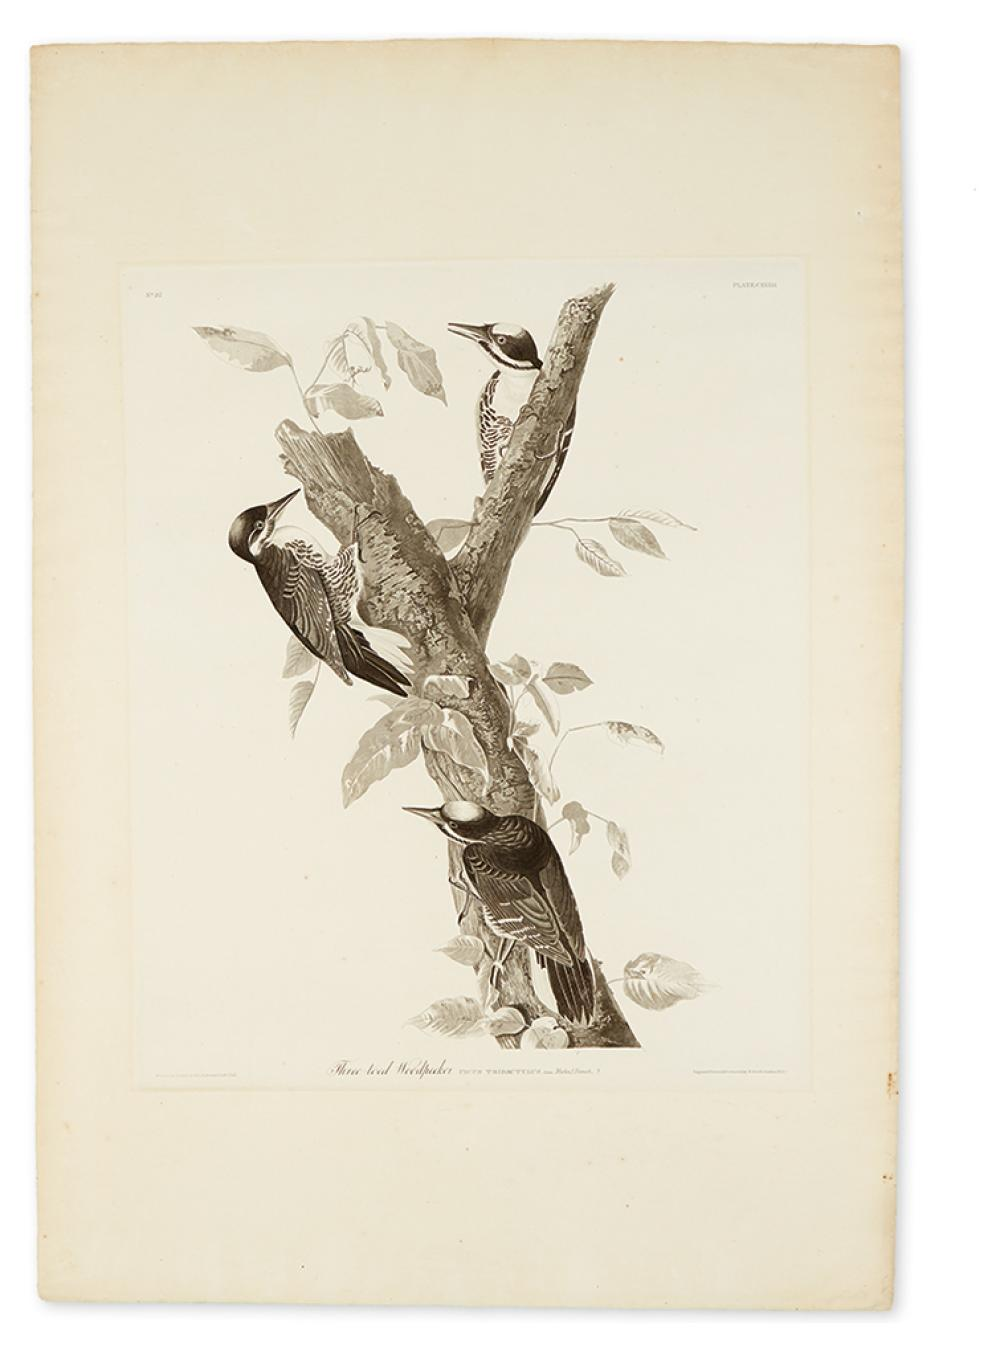 AUDUBON, JOHN JAMES. Three-Toed Woodpecker. Plate CXXXII.